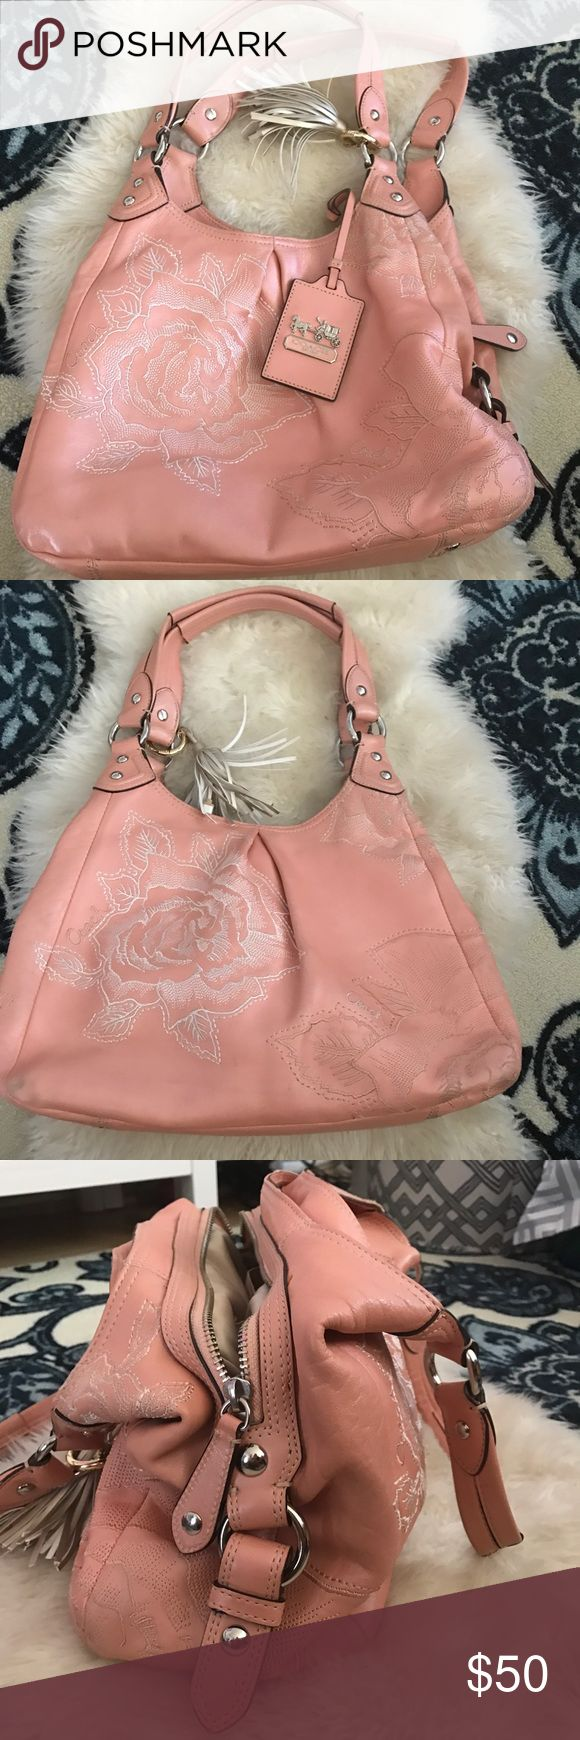 COACH - Hobo Style Purse with Rose Details 🌹 Super cute and perfect for spring Hobo COACH purse. It's a workhorse of a bag with 3 compartments and lots of space in each one.  The color is reminiscent of LV's Rose Ballerine and the rose details are stiched on each side.  Some scuffing on the sides shown in pics (dark corners) *tassel not included* Coach Bags Hobos